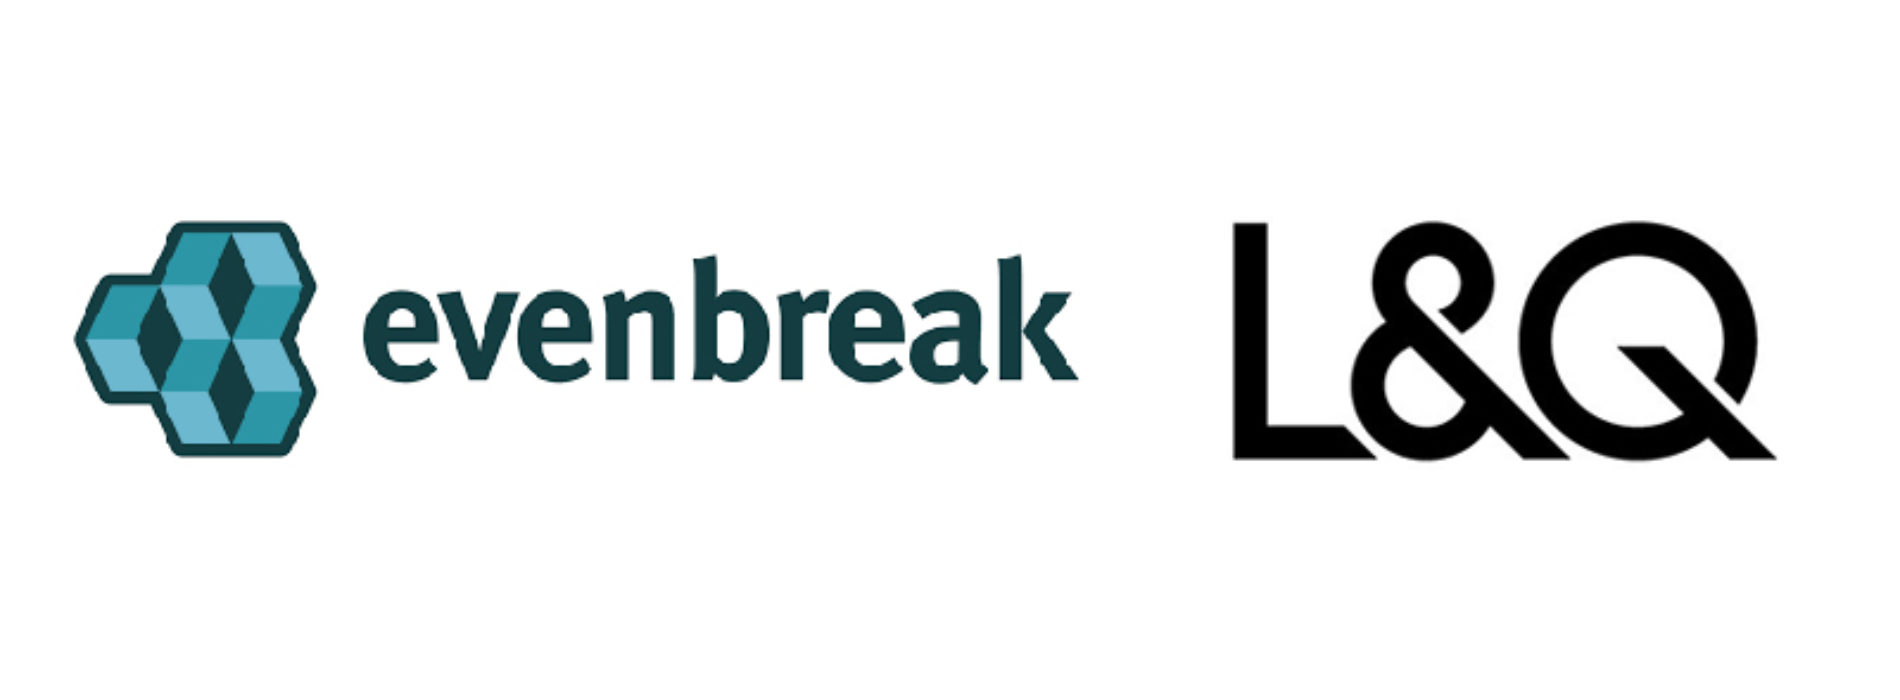 L&Q sets out disability inclusion commitment with Evenbreak